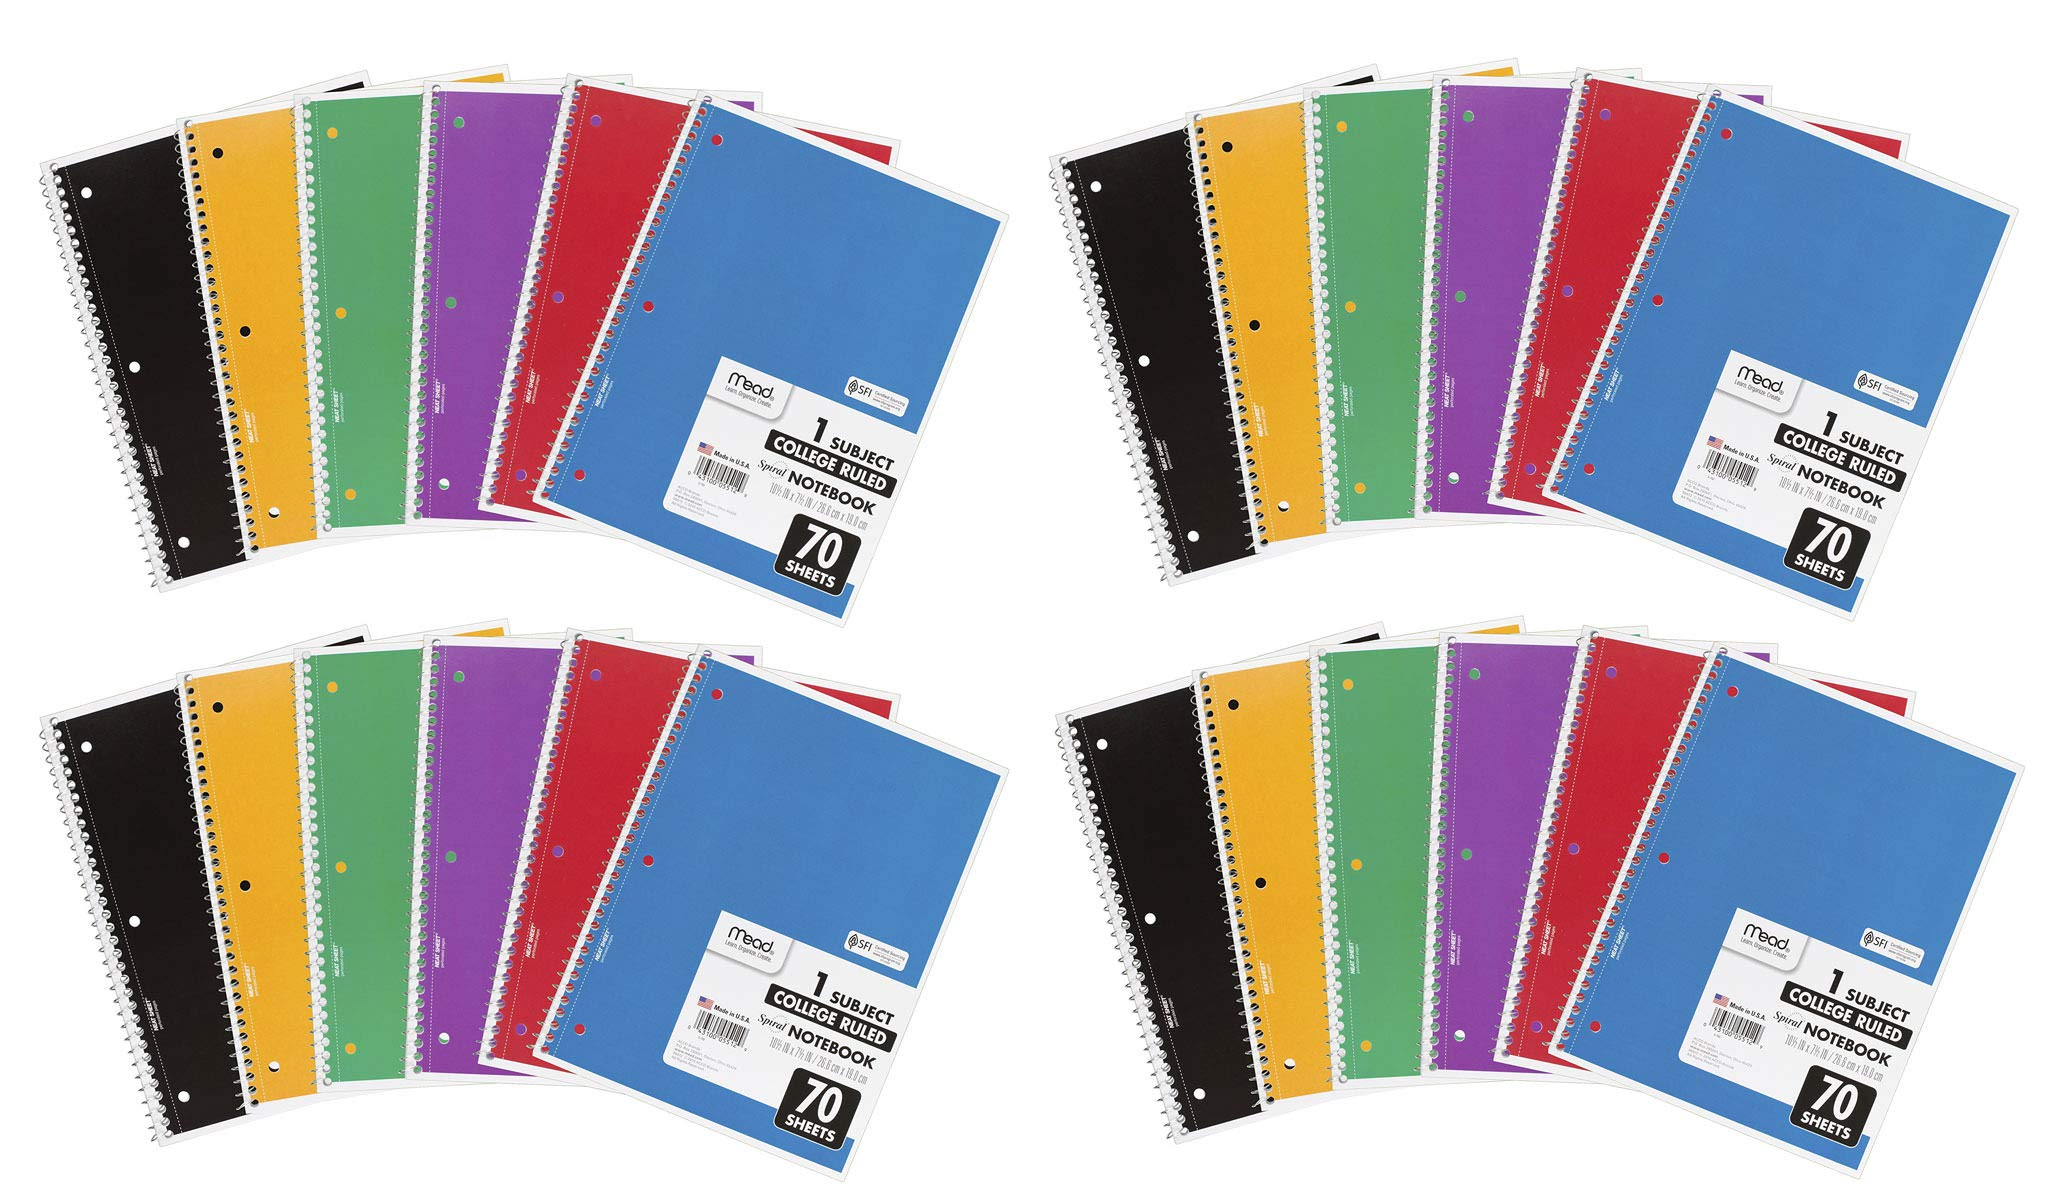 Mead MNJDHCHG Spiral Notebooks, 1 Subject, College Ruled Paper, 70 Sheets, 10-1/2'' x 7-1/2'', Assorted Colors, 6 Pack (73065) 24 Pack